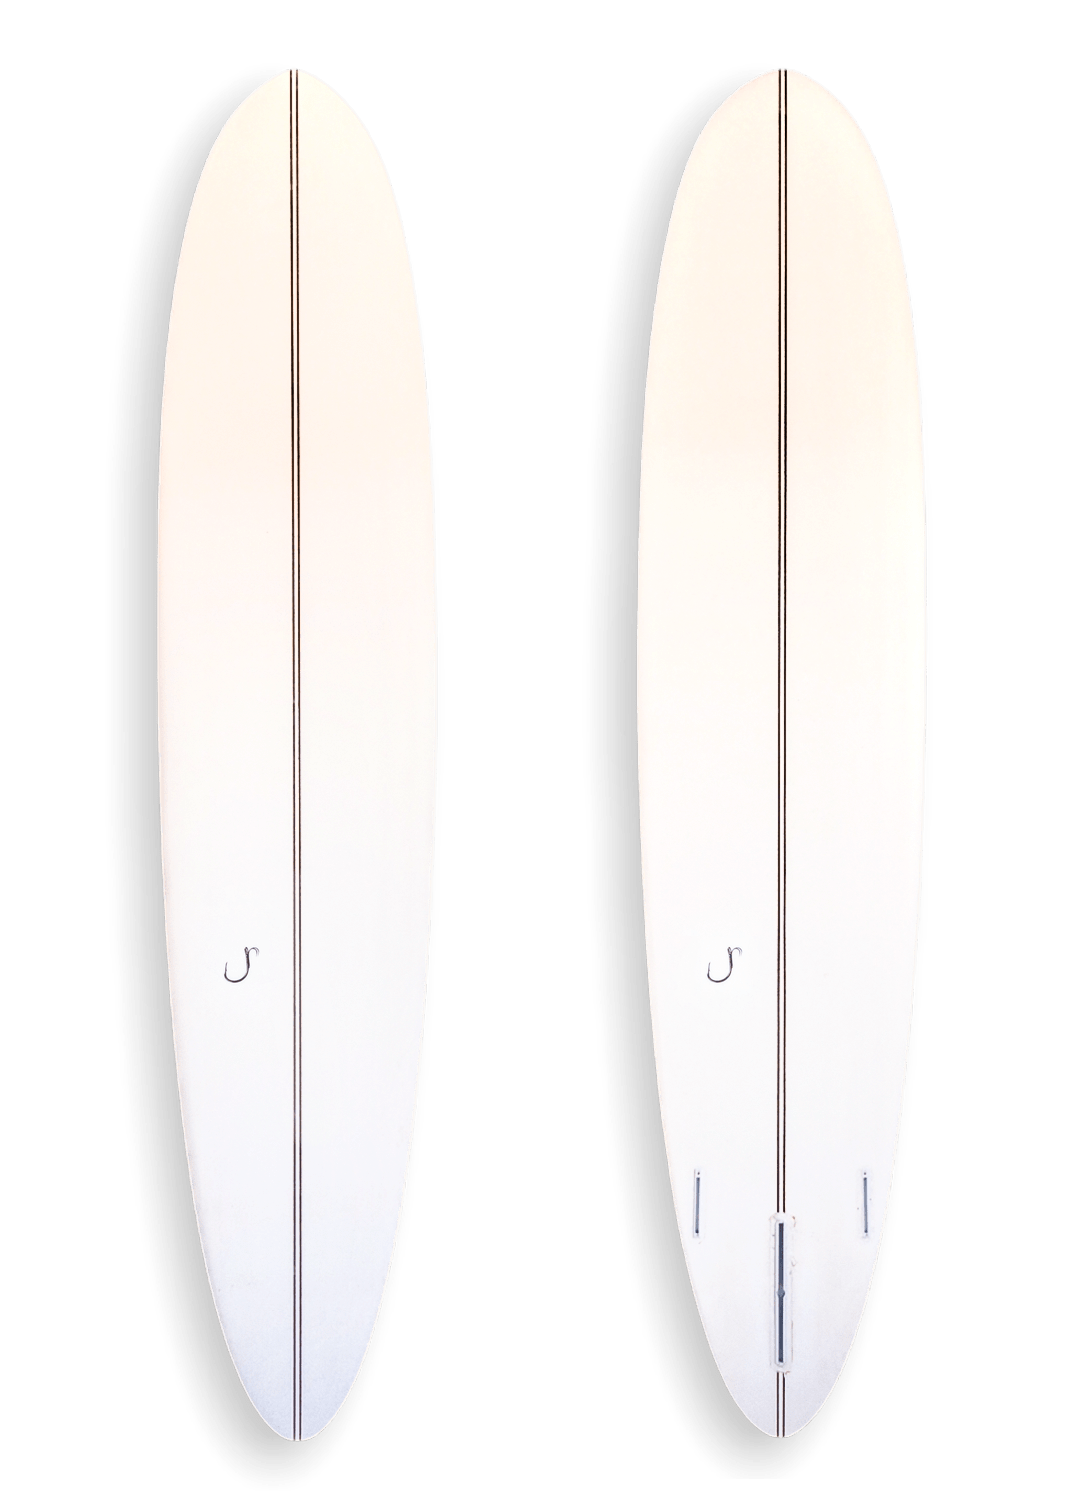 cachalot surfboards planche surf handmade artisan shaper hollow bois quiver pin performer